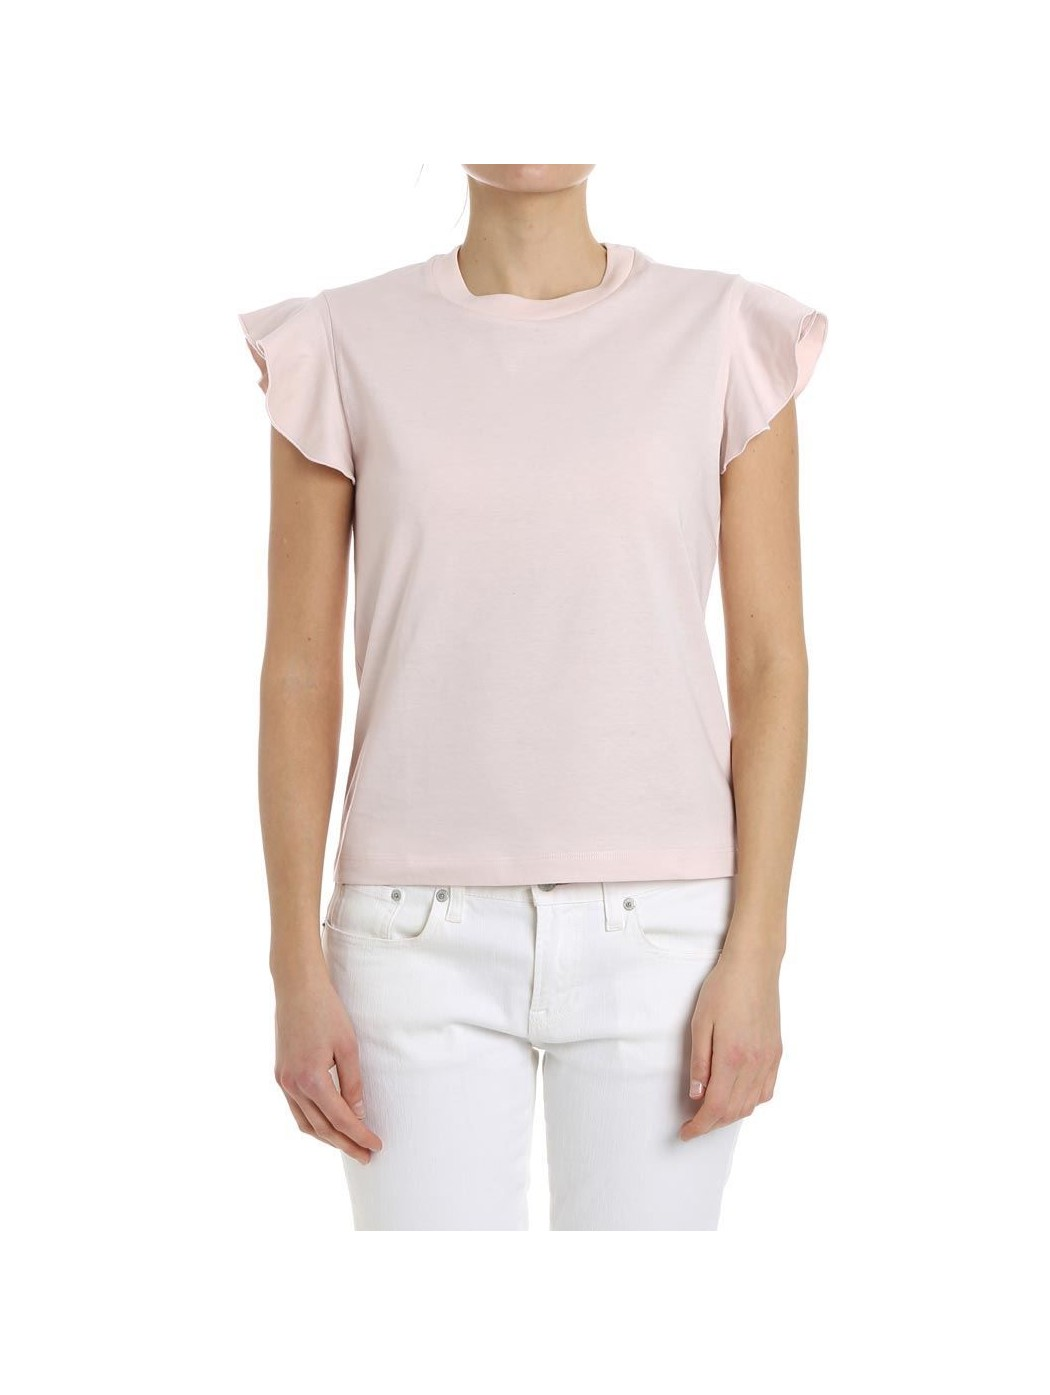 DONDUP S722 510 T-SHIRT